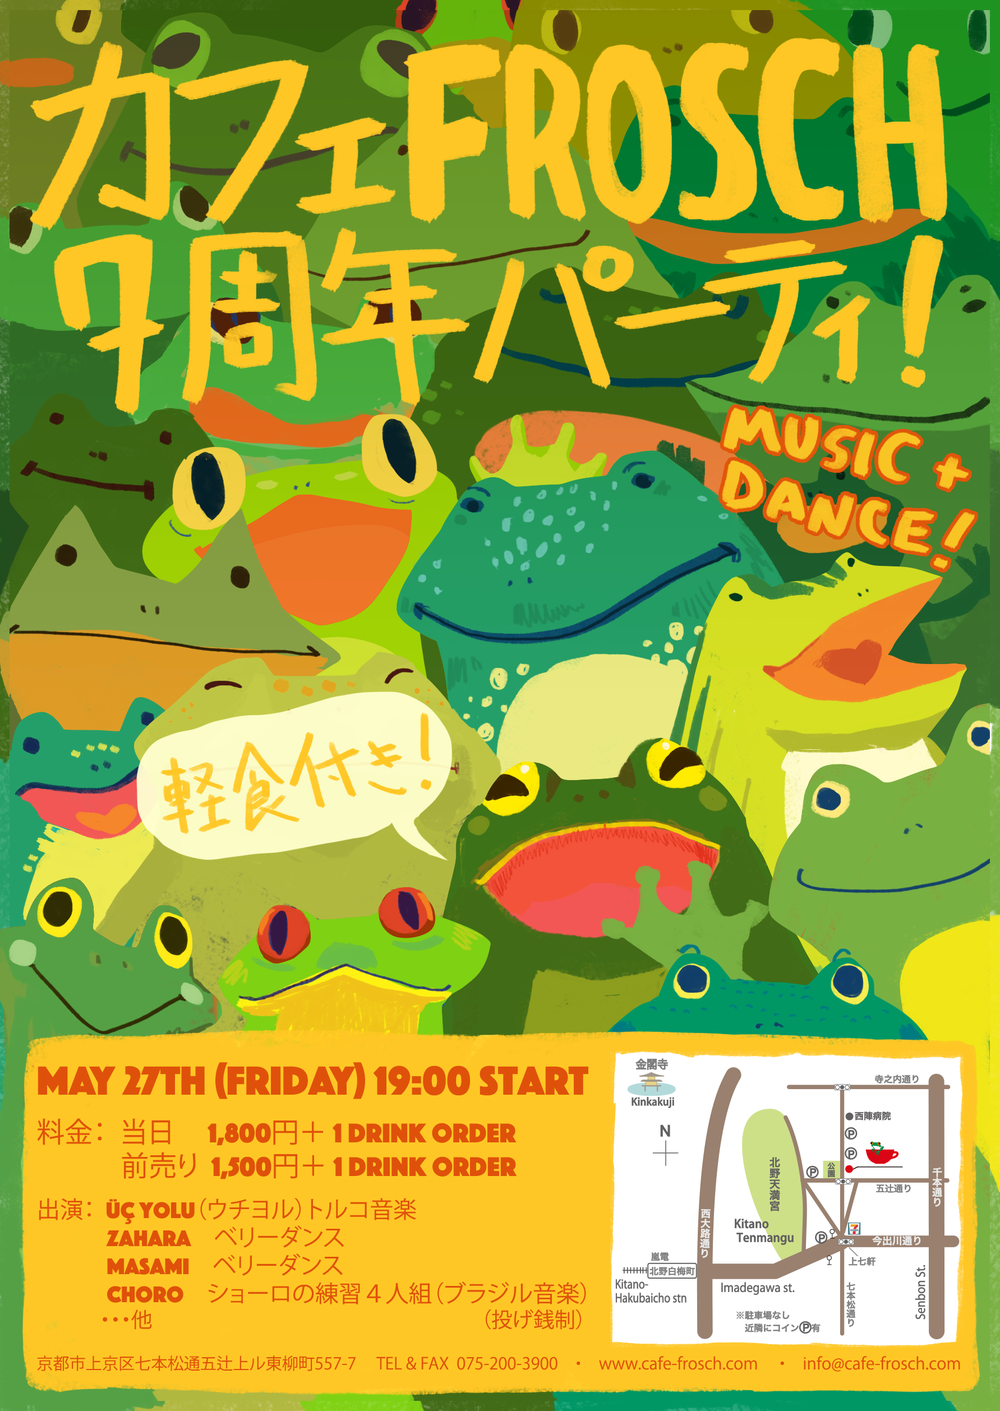 Cafe Frosch 7th Anniversary flyer